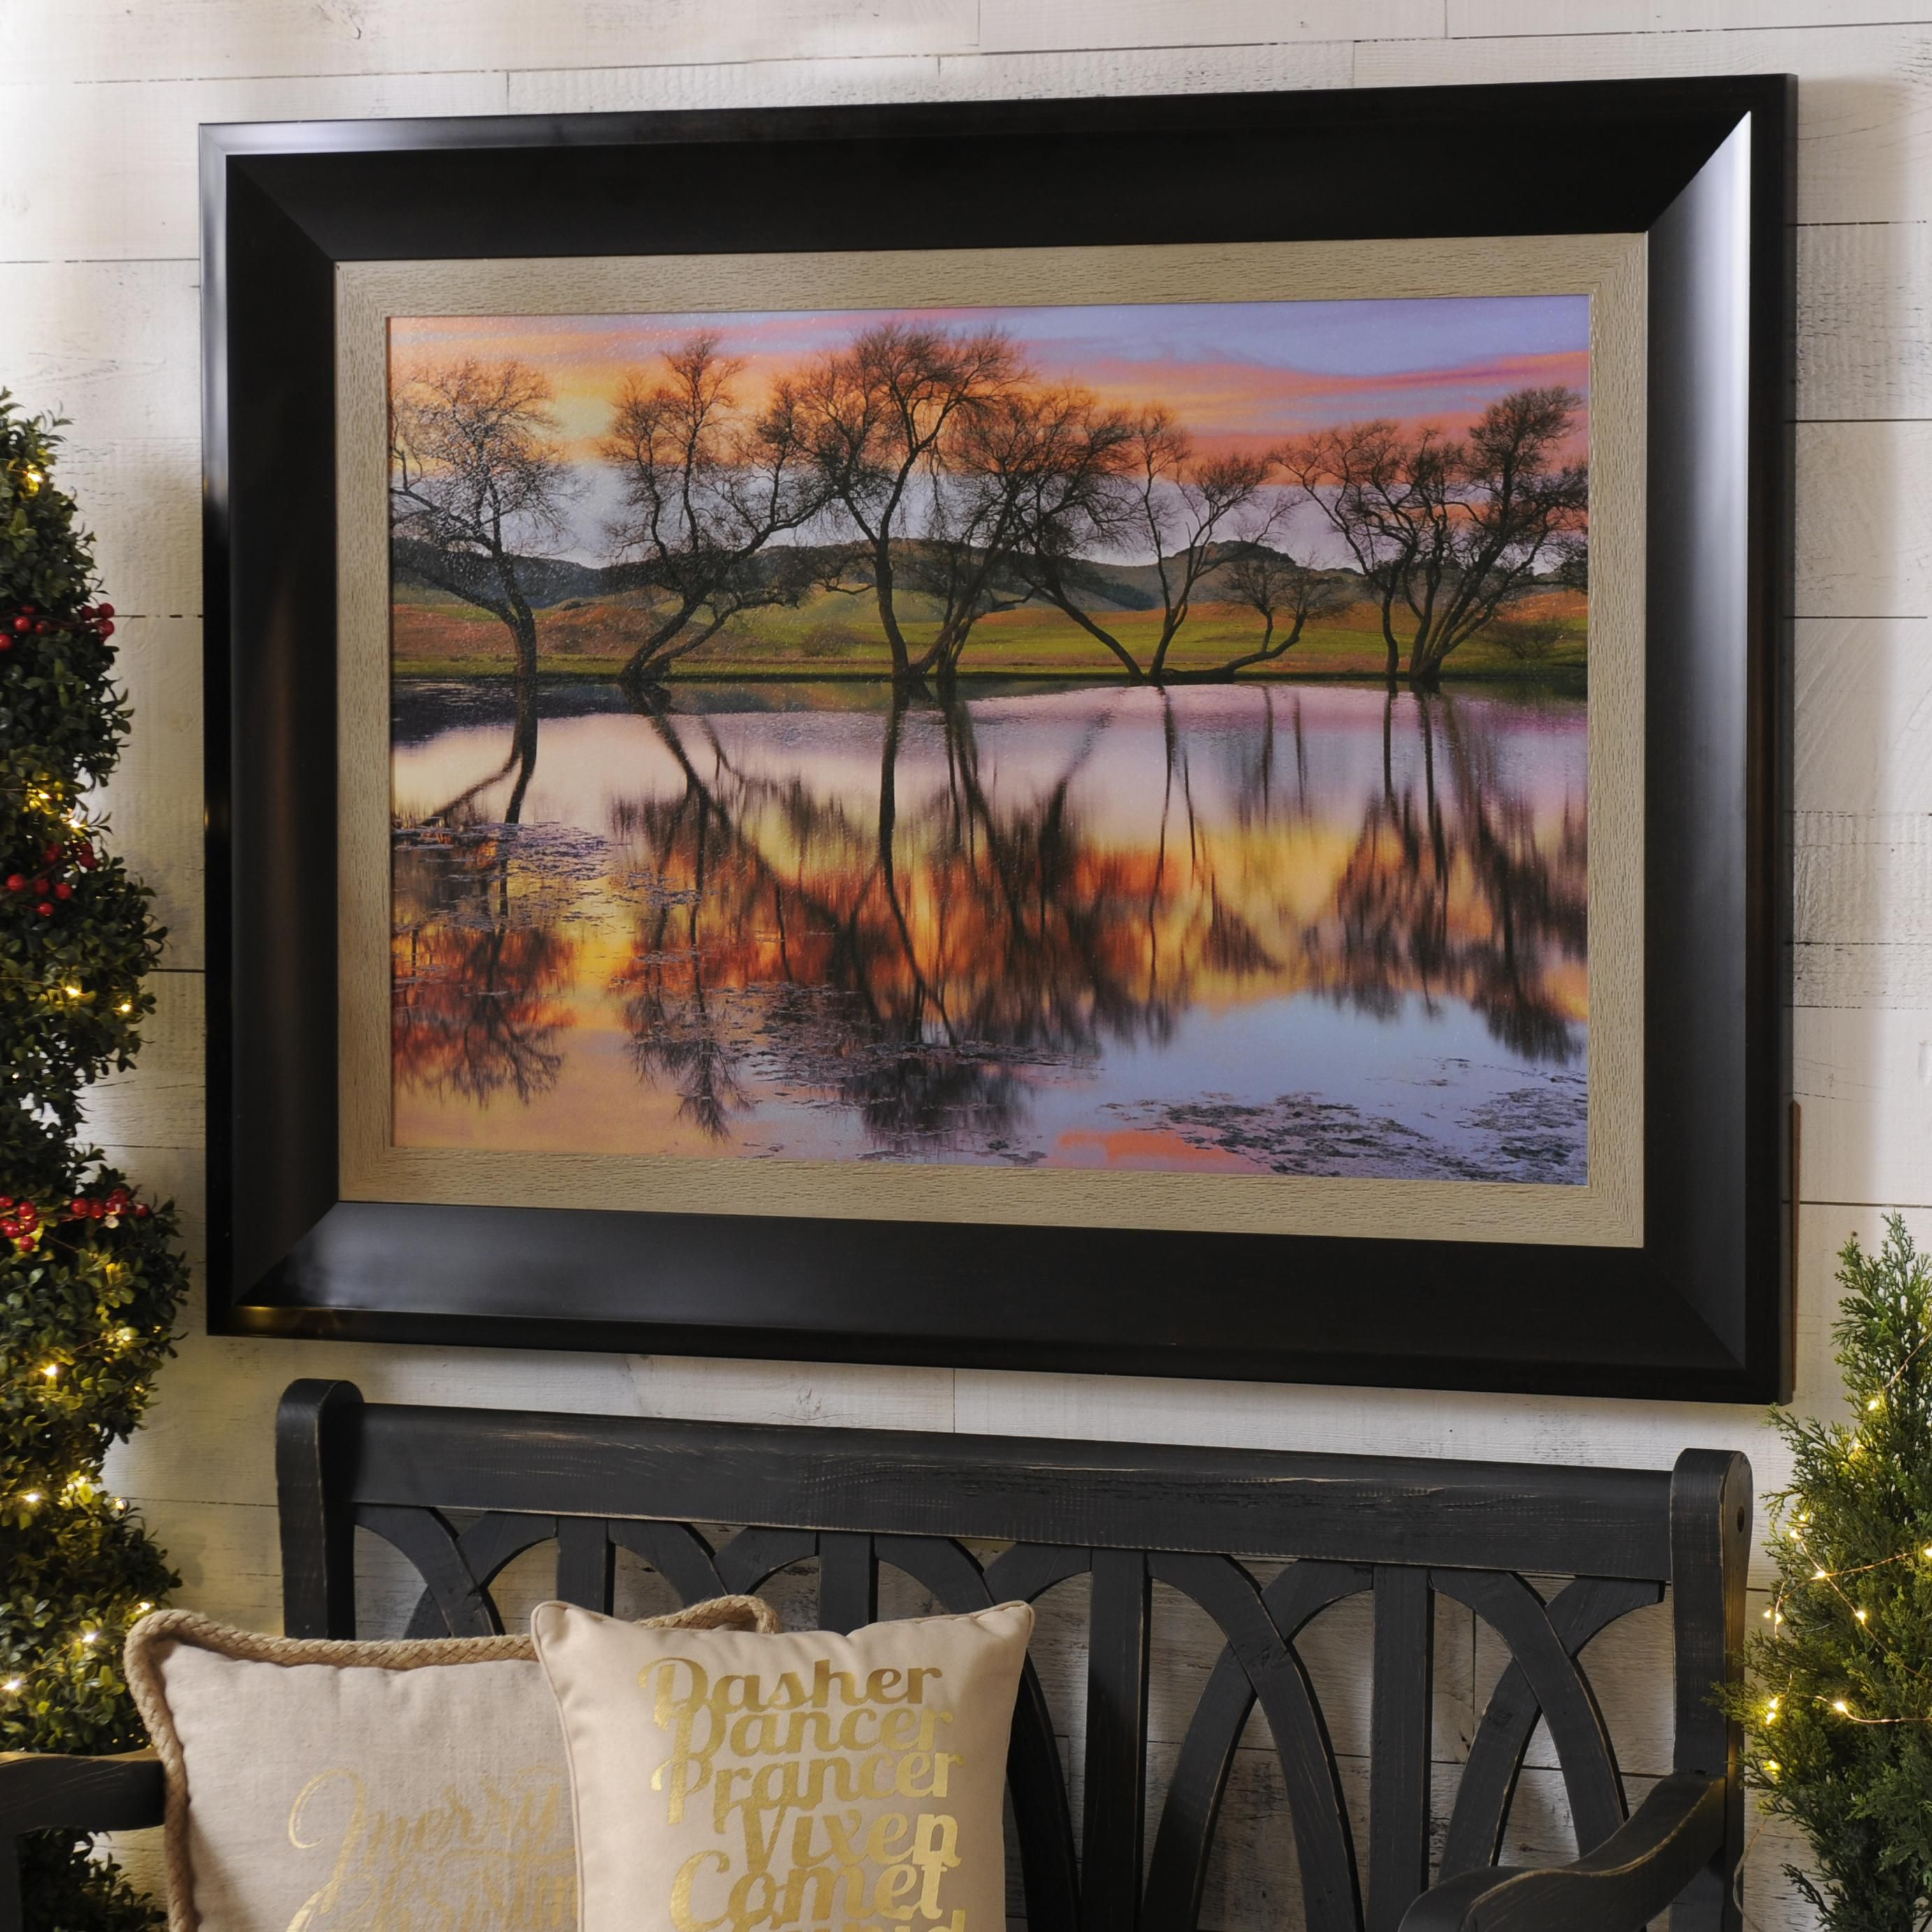 Bring sophisticated art pieces into your home with